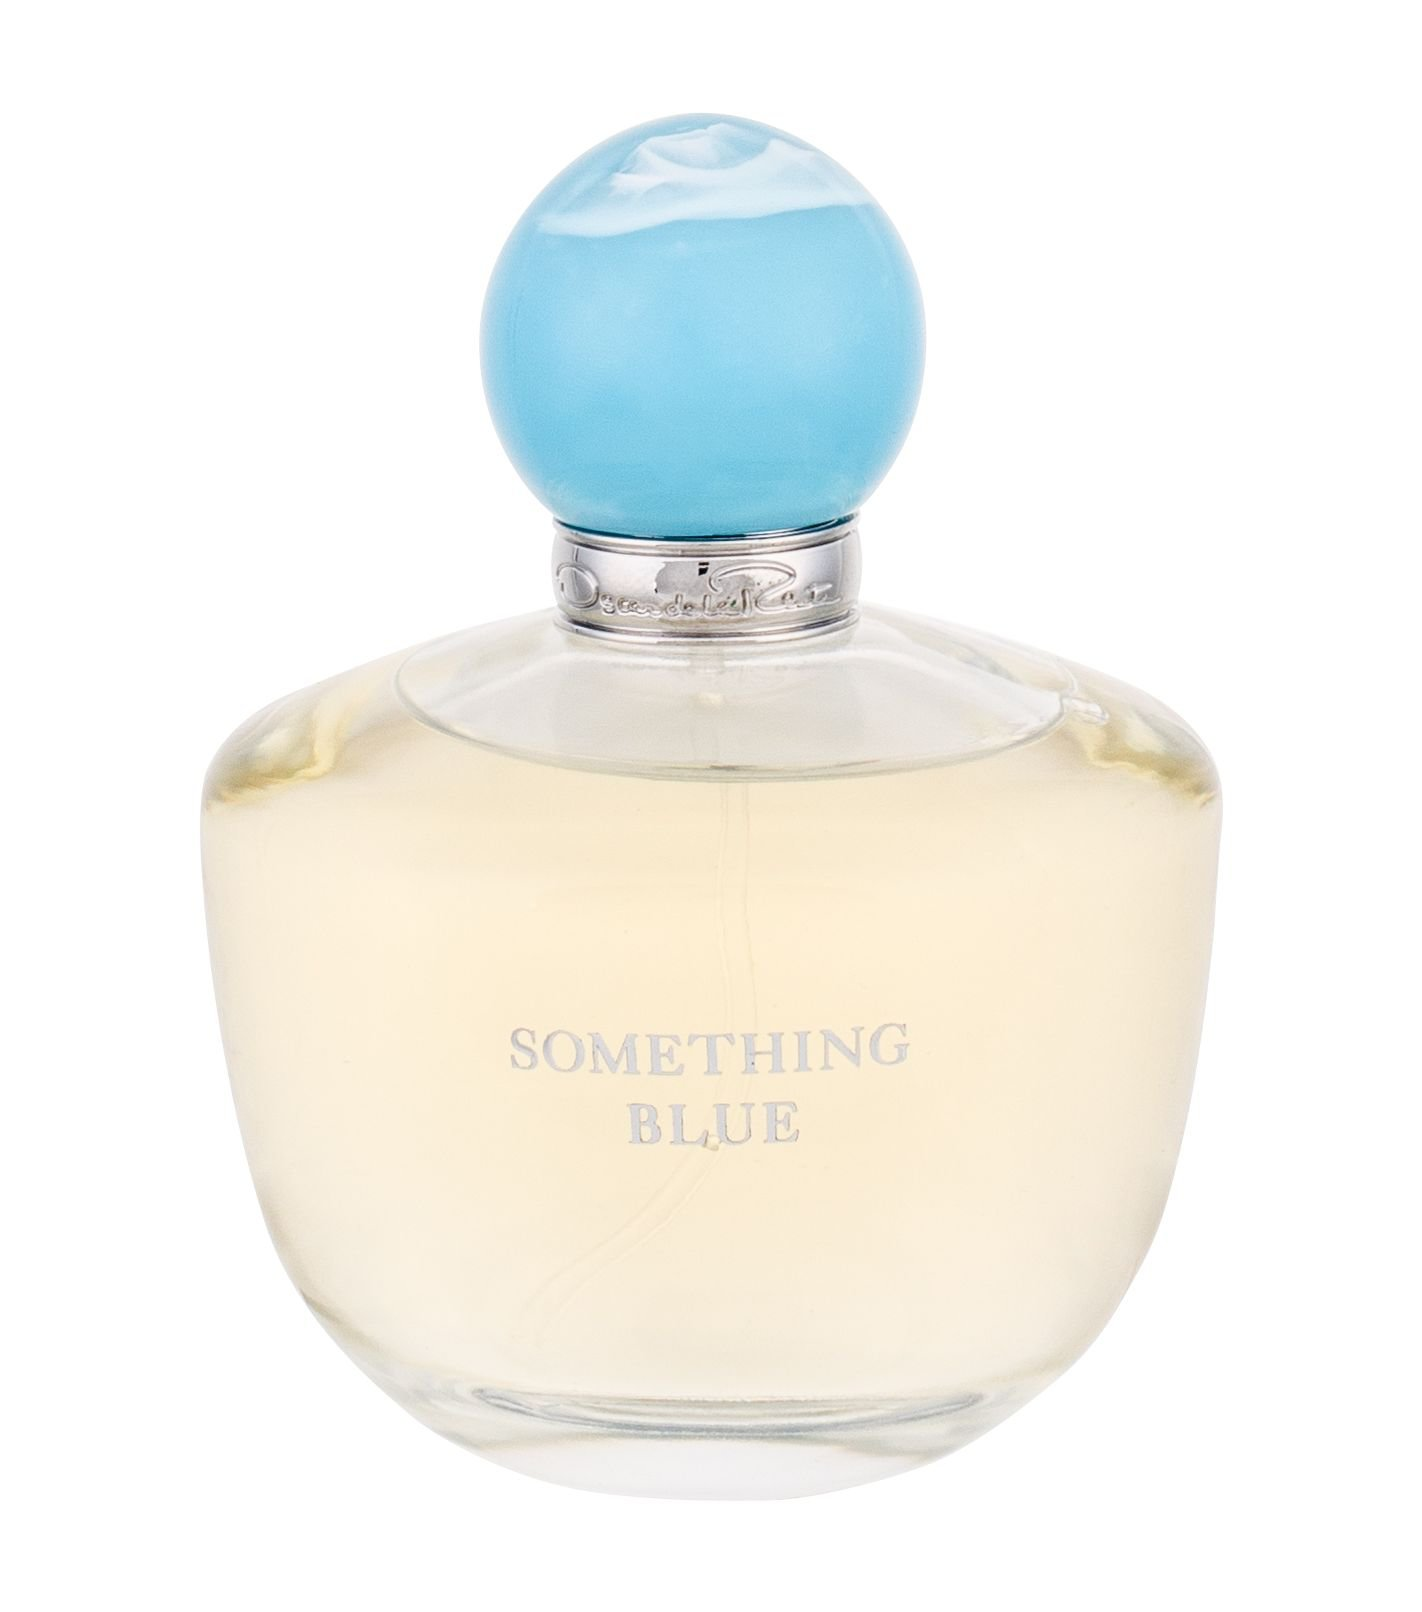 Oscar de la Renta Something Blue, edp 100ml